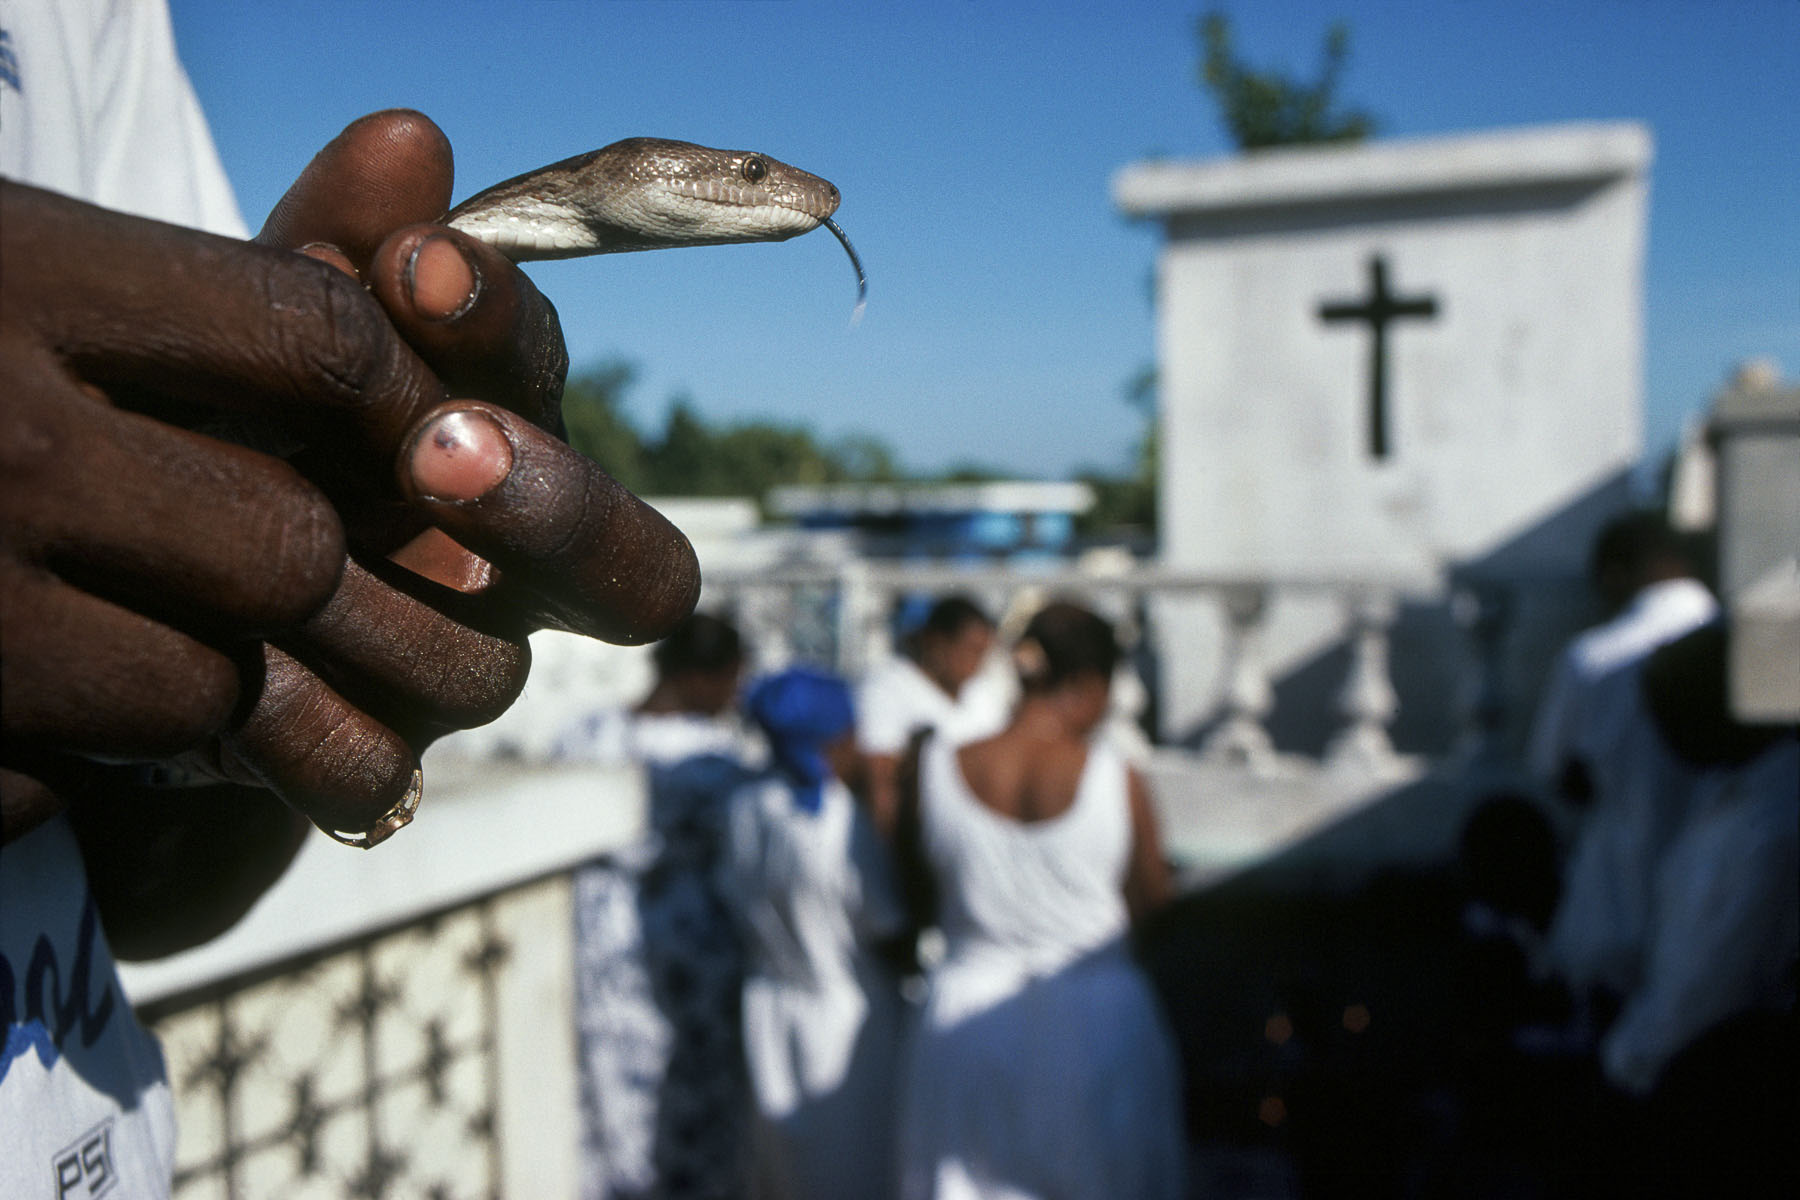 On All Saints' Day, the Guedes celebration. The voodoo followers gather in the cemeteries around the Cross of Baron Samedi, loa (spirit) of the dead in November 1995